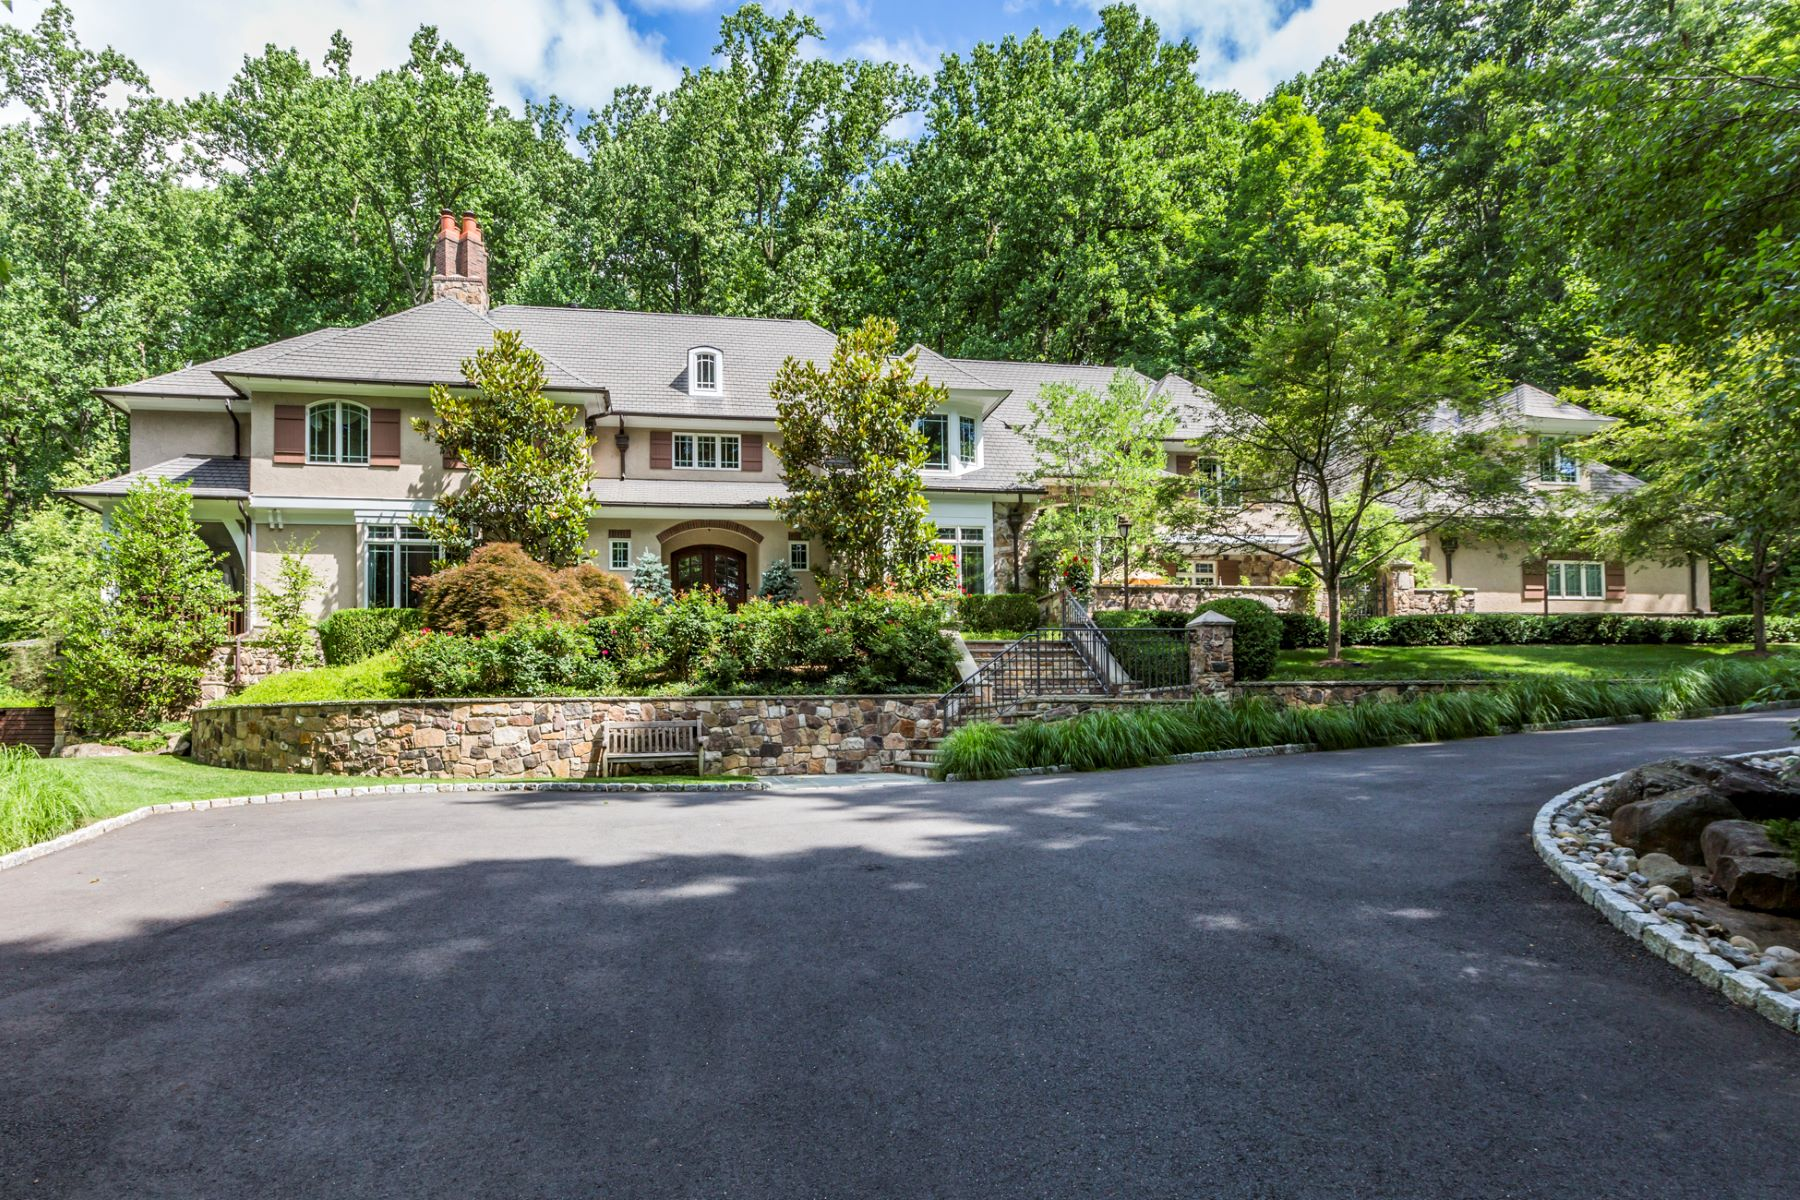 Spectacular Sanctuary 44 Cradle Rock Road, Princeton, New Jersey 08540 Vereinigte Staaten